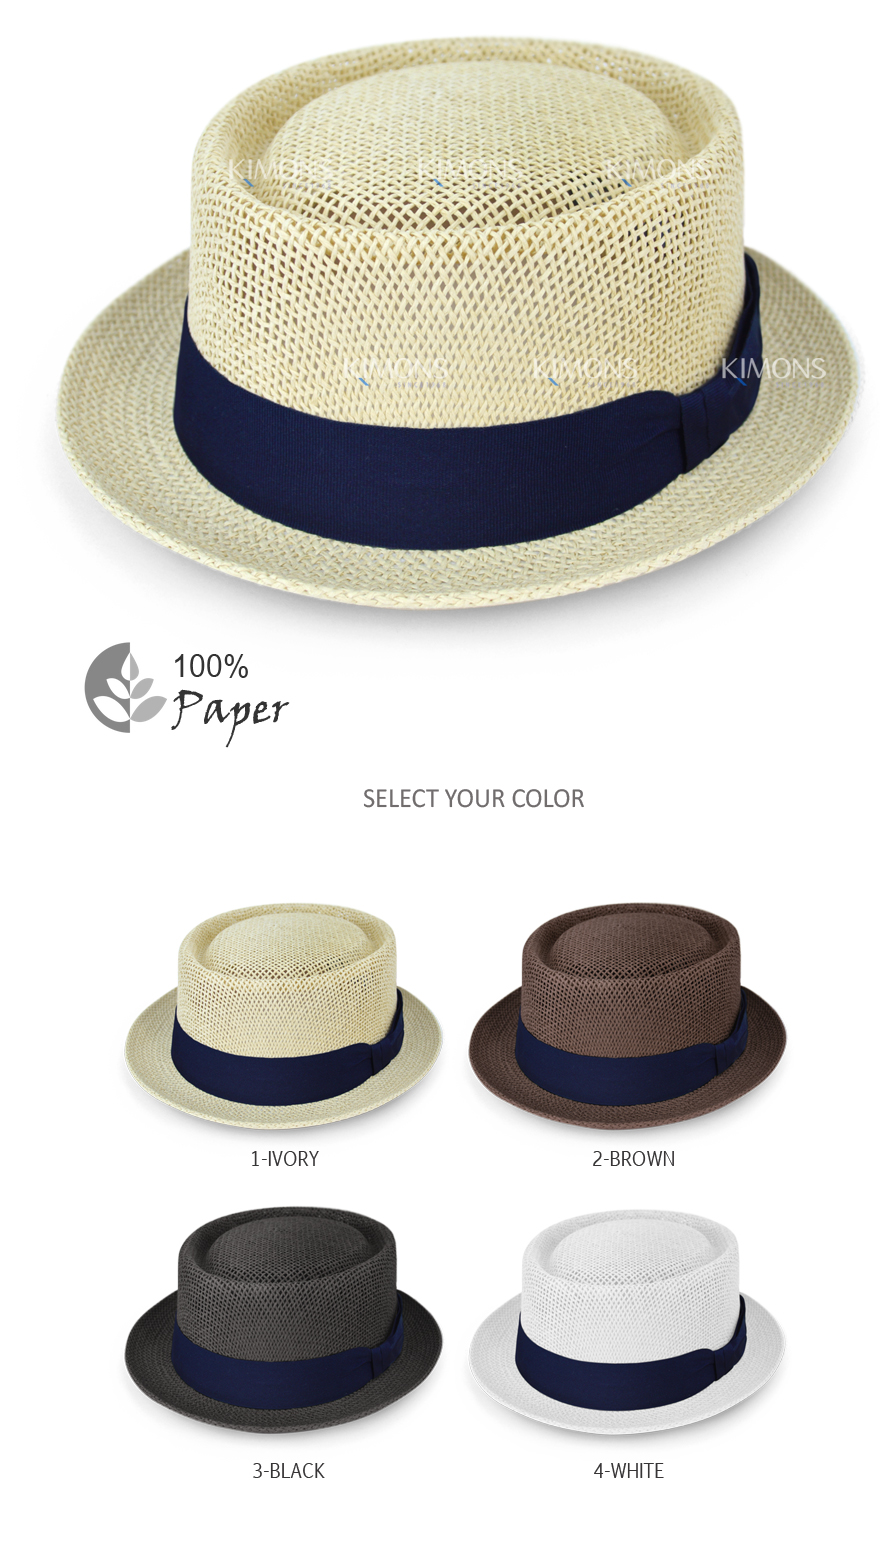 Our fashionable paper straw Porkpie hat provides you with the most stylish  look in the hot weather. Not only will it be the perfect accessory to  provide ... 4041ec7a5fa